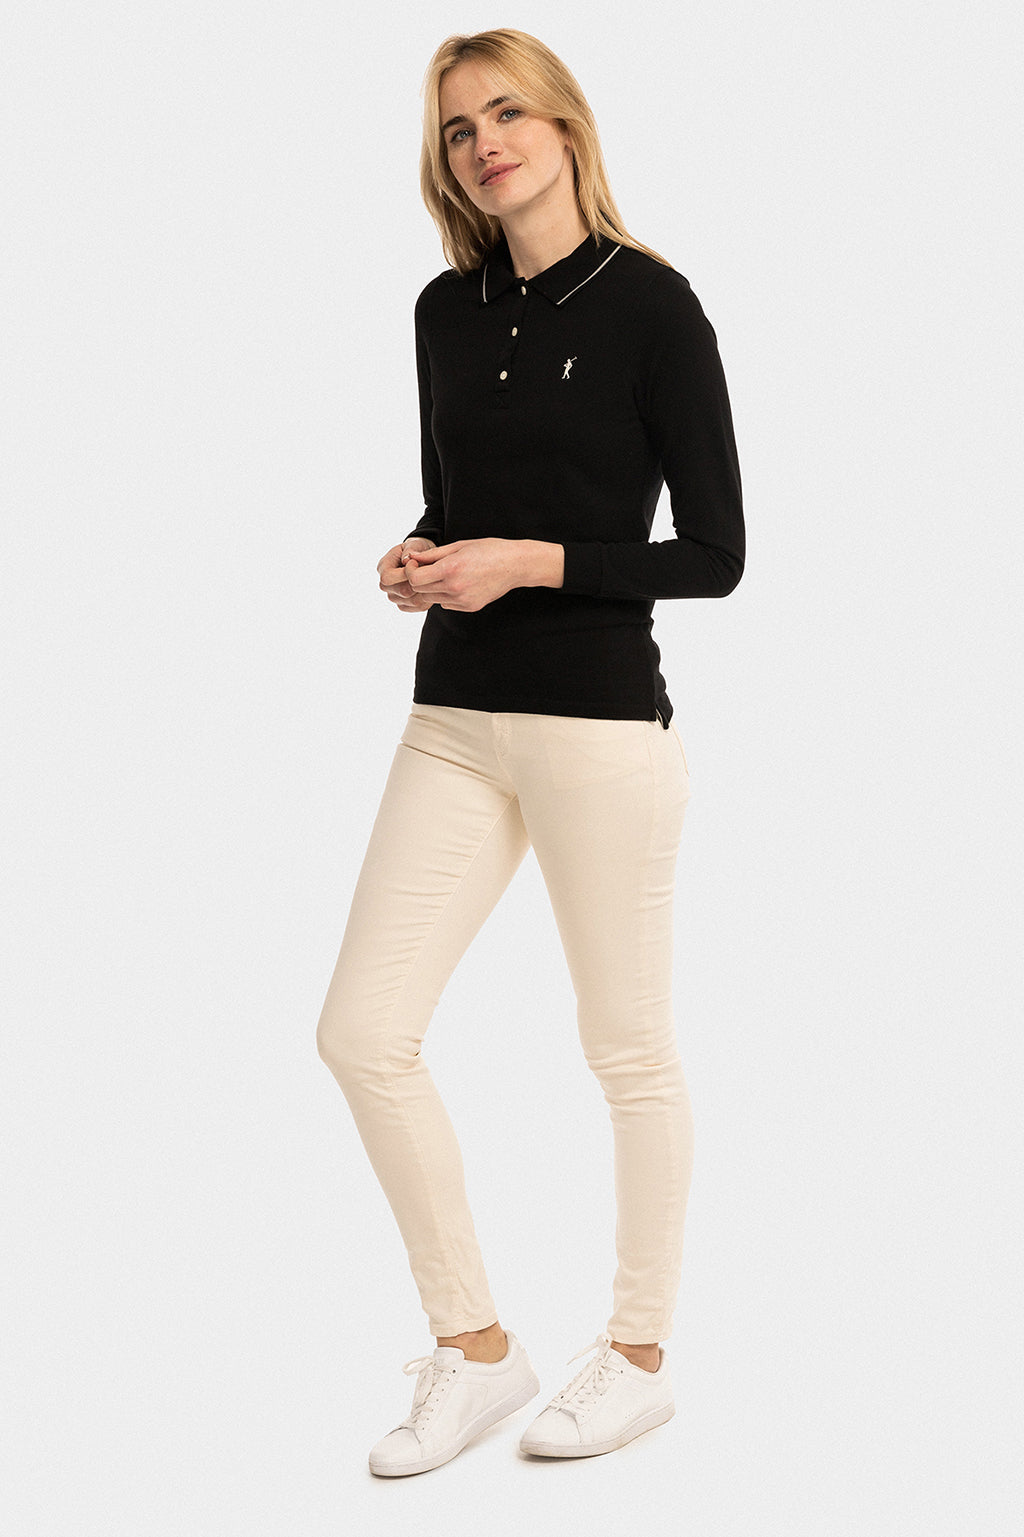 Black long sleeve polo shirt with contrast stripes